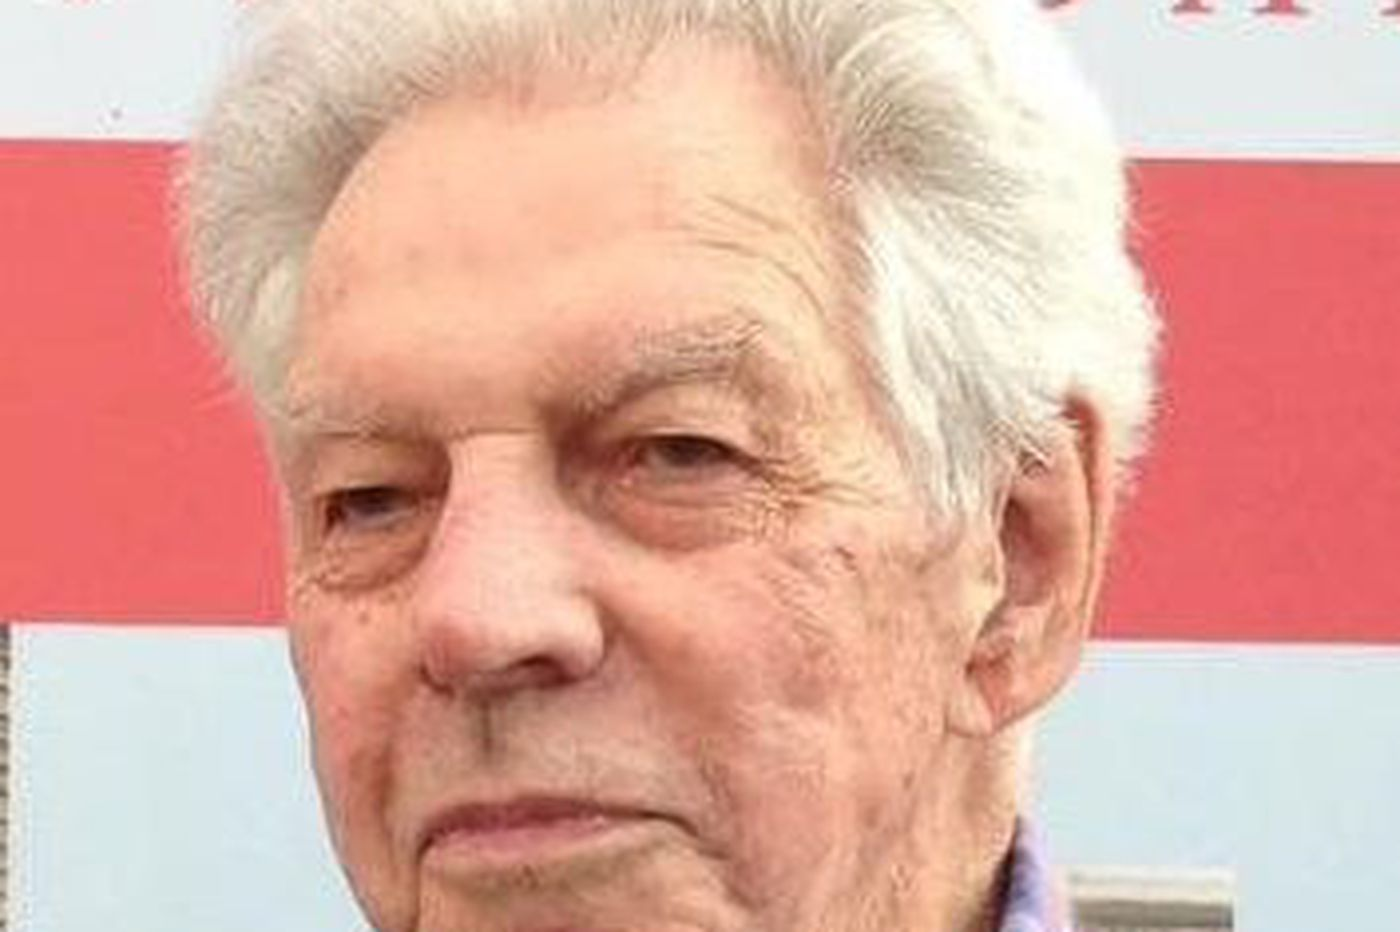 John J. Cassidy, 92, former president of Teamsters Local 107